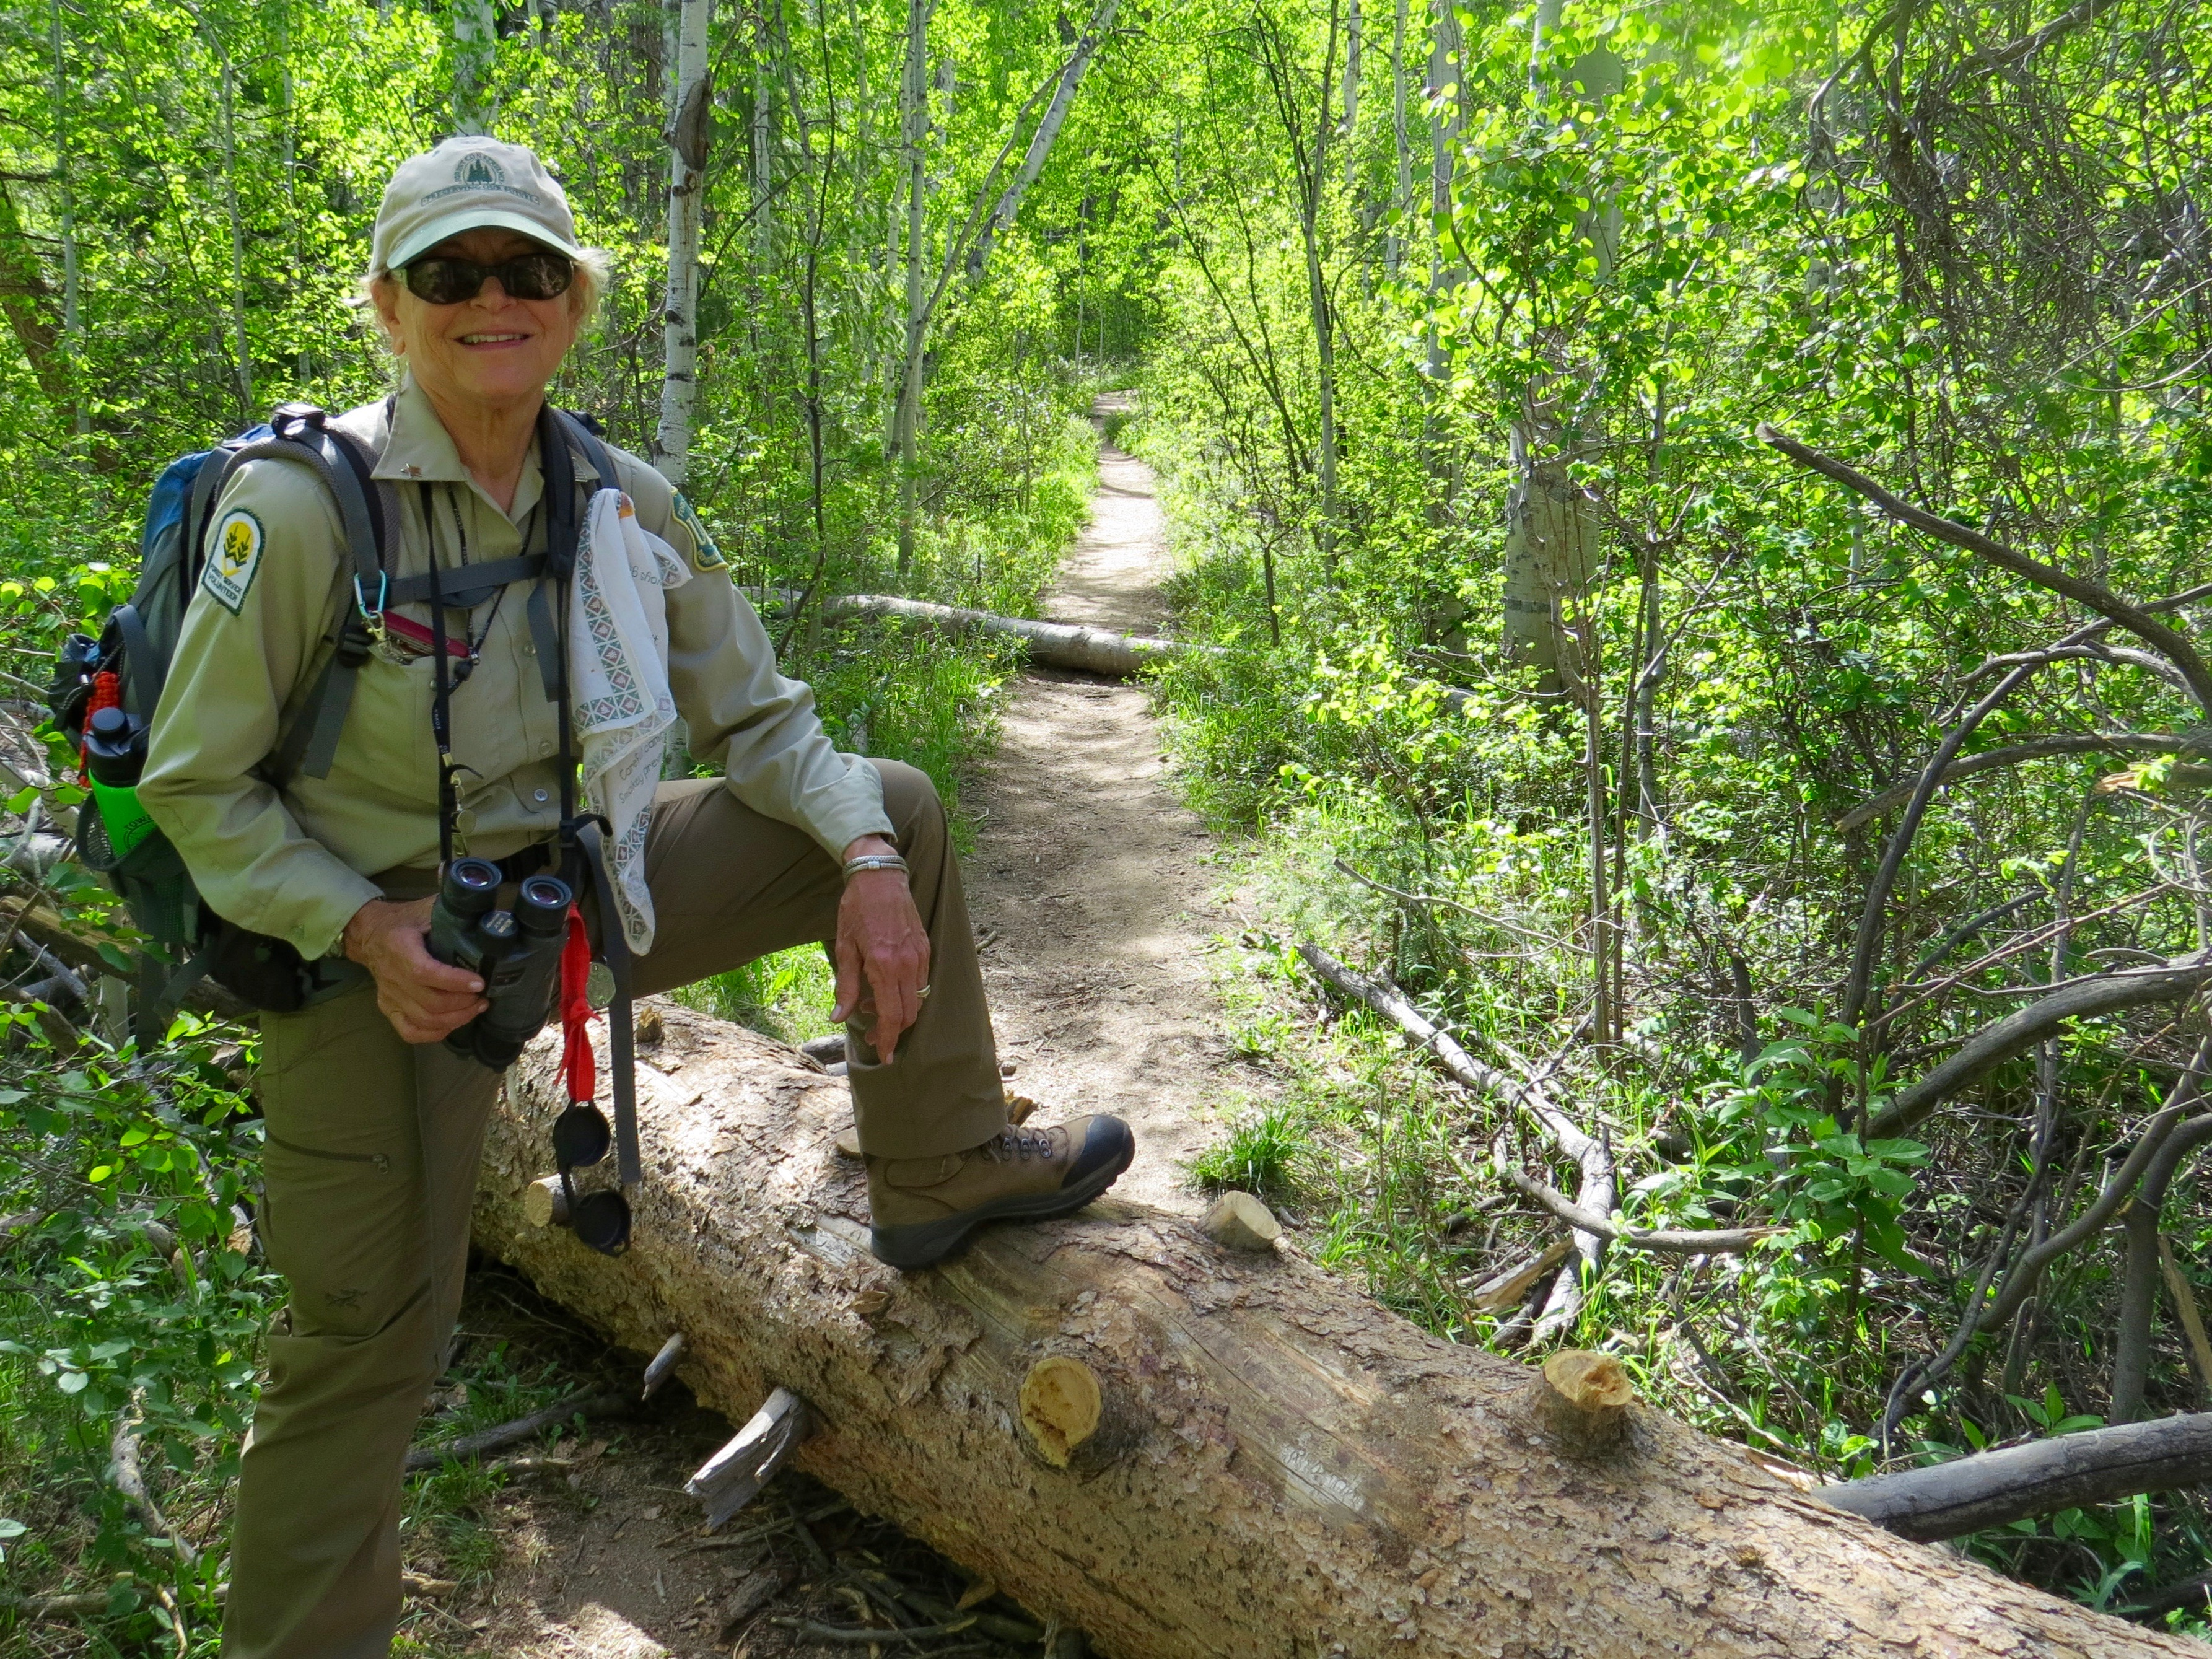 In June we volunteers check the trails for fallen trees and report back to the USFS. They send crews to clear the  pathways.  My friend, Donna Grauer and I thought these logs were a bit too much for us.